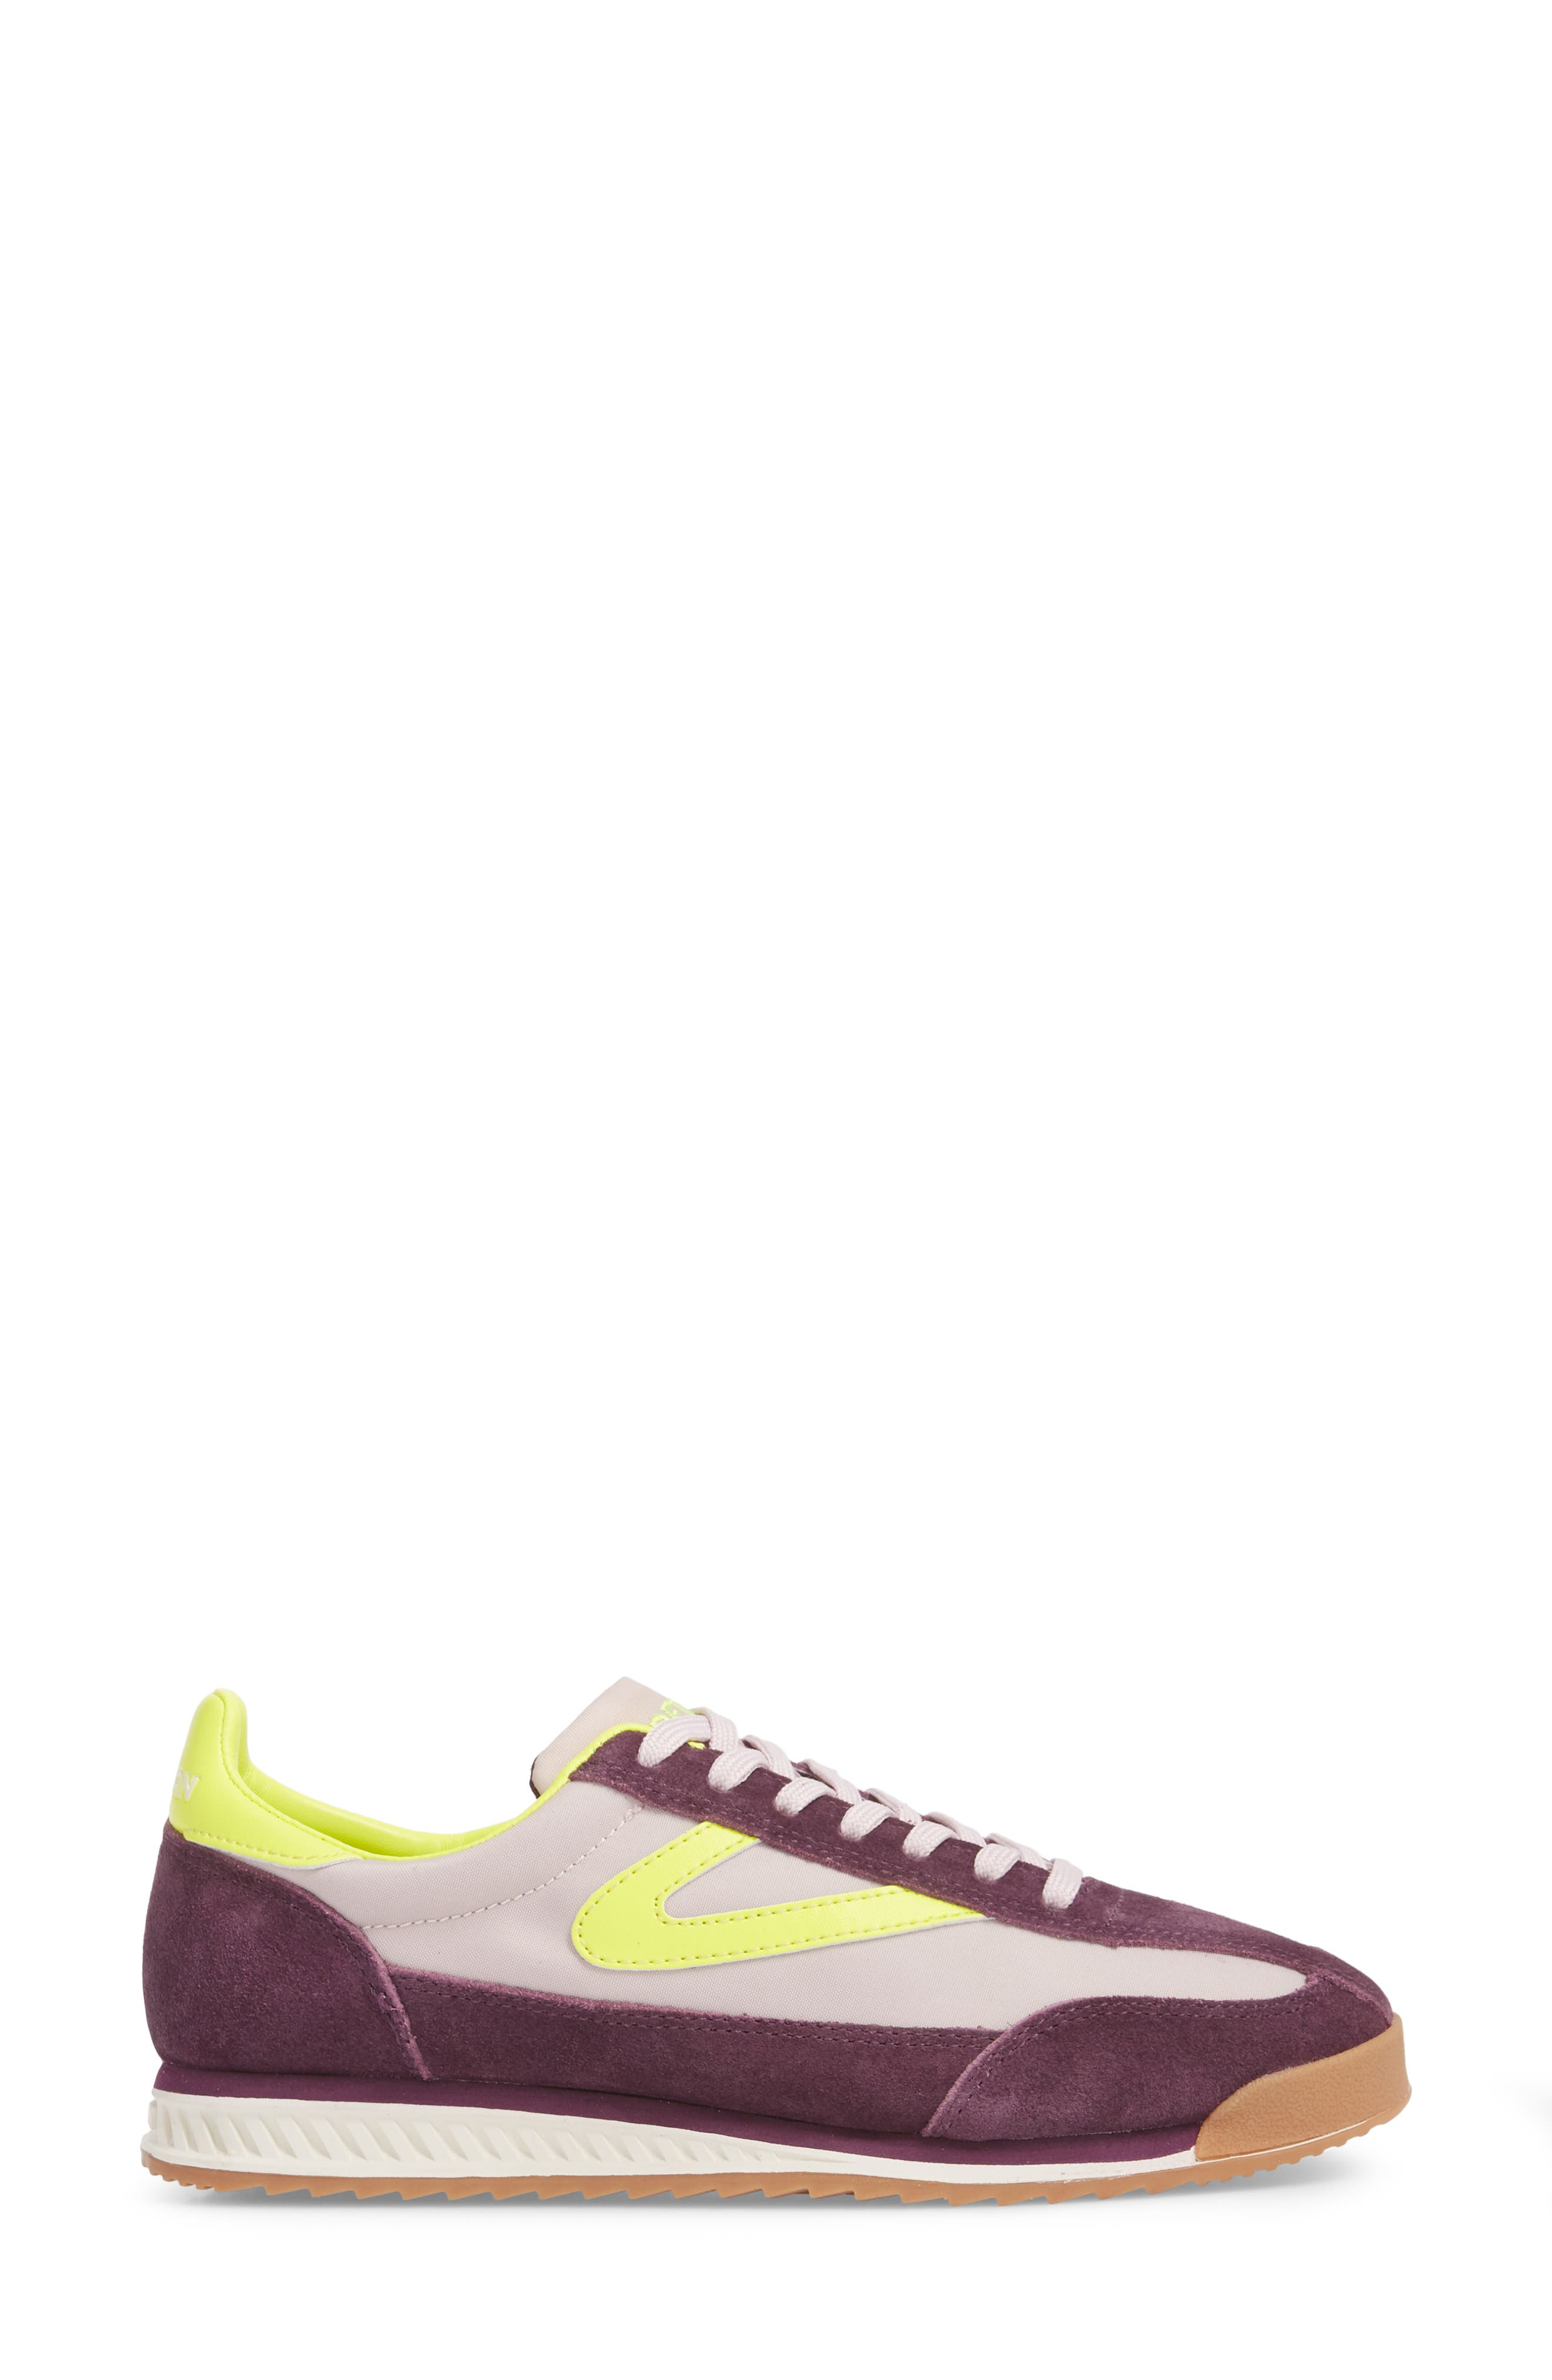 Rawlins 2 Sneaker,                             Alternate thumbnail 5, color,                             Eggplant/ Summer Lilac/ Yellow